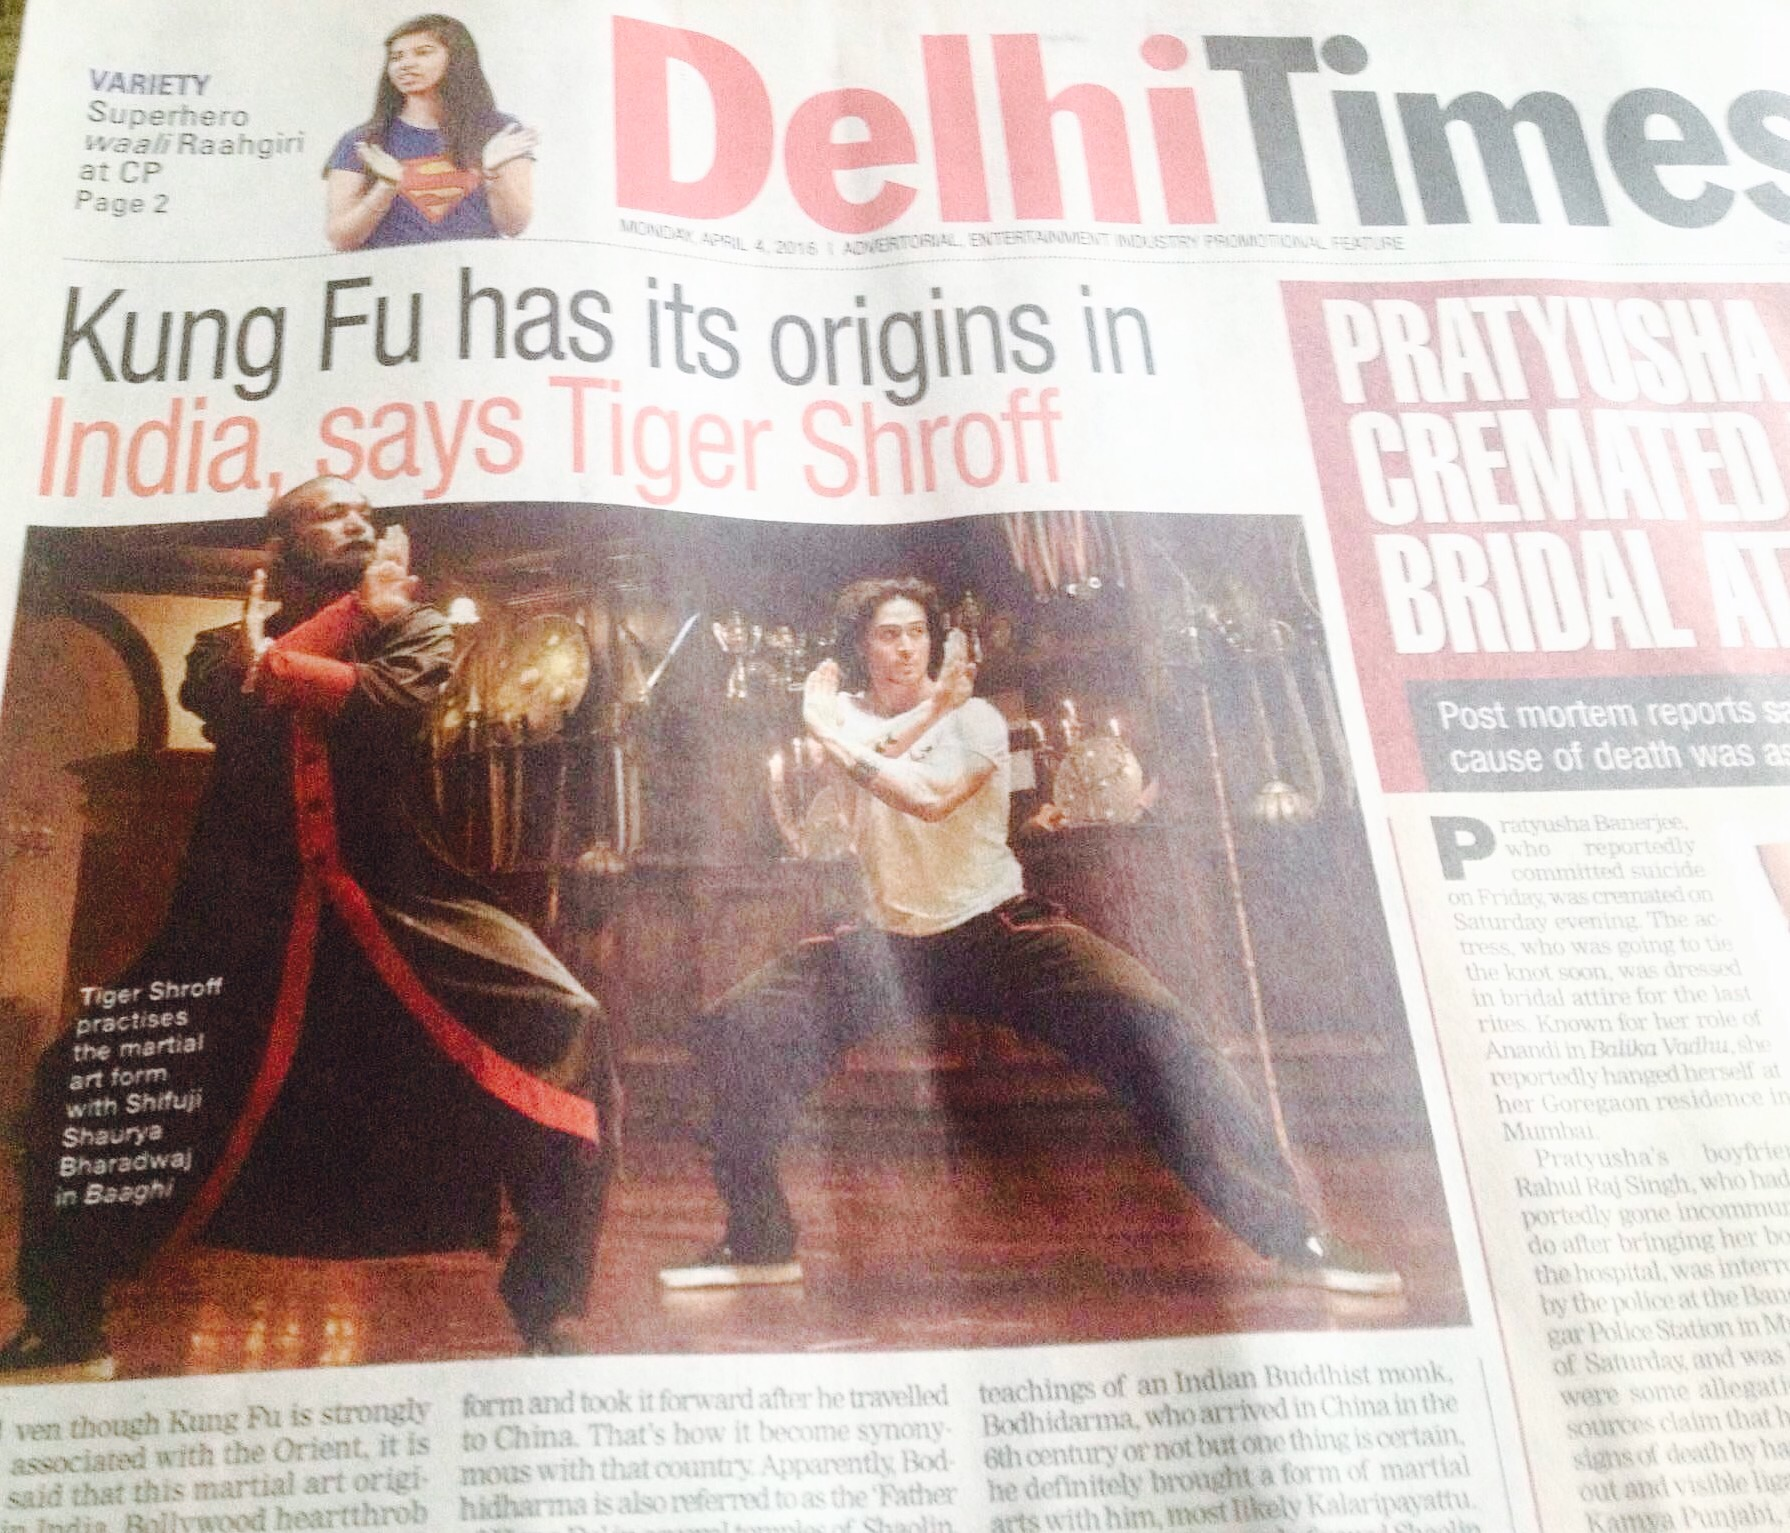 Kung Fu has its origins in India, Says Tiger Shroff